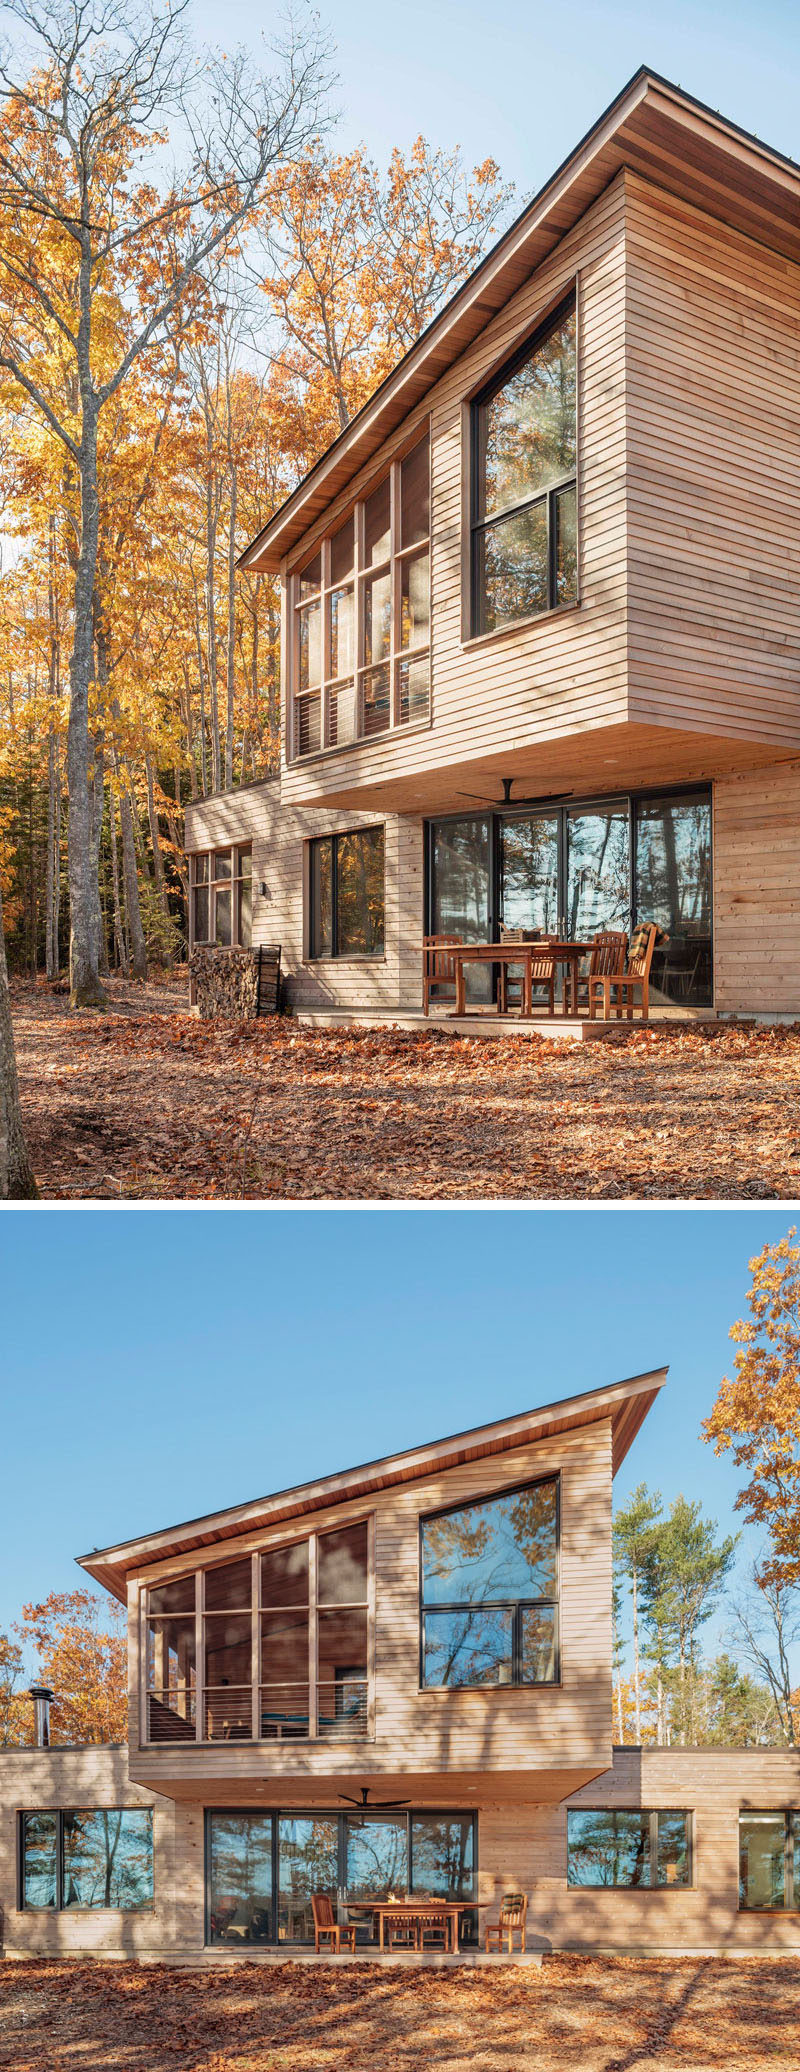 Kaplan Thompson Architects have designed a new contemporary house in Harpswell, Maine, that sits by the water and features a cedar siding exterior with various textures that allow the house to melt away into the trees. #ModernHouse #WoodHouse